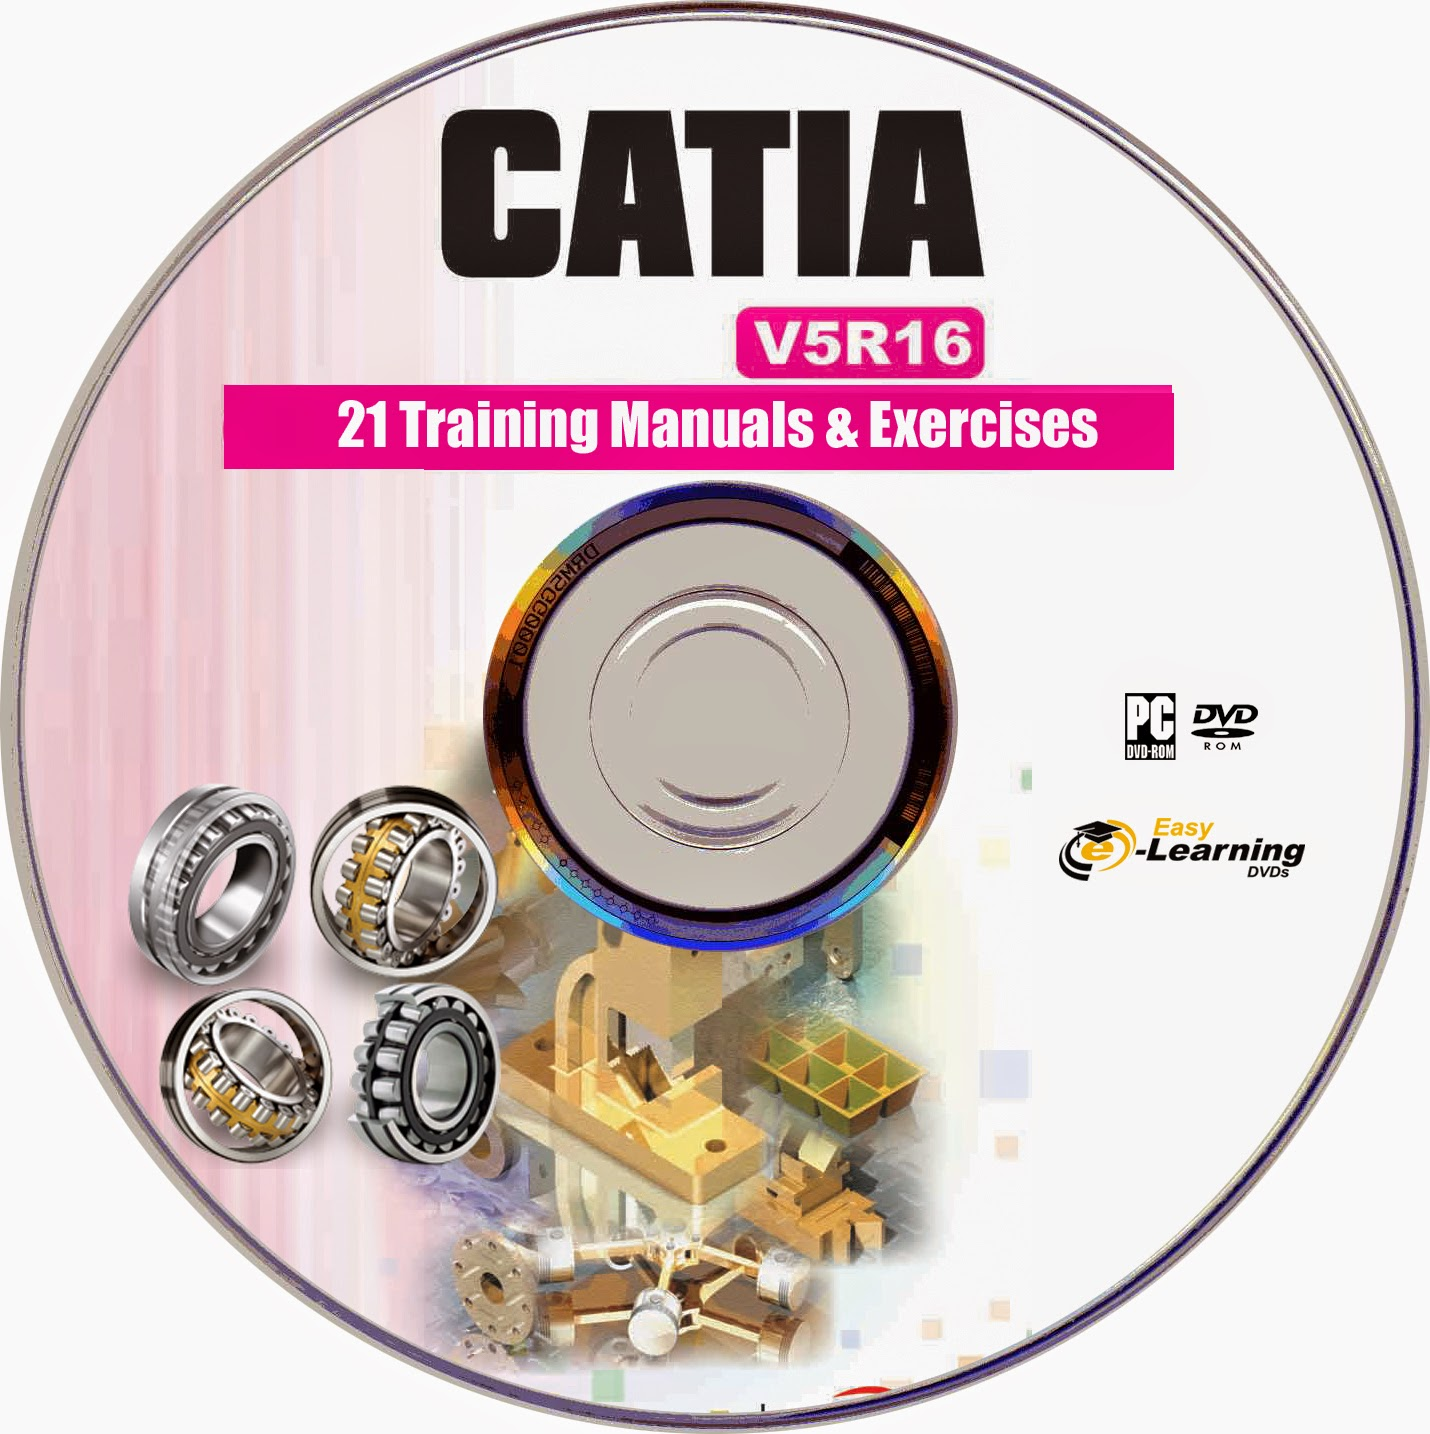 easy learning dvds catia v5 training manuals exercises dvd rs 300 rh easylearningdvds blogspot com catia v5 training manuals pdf CATIAV5 ISO